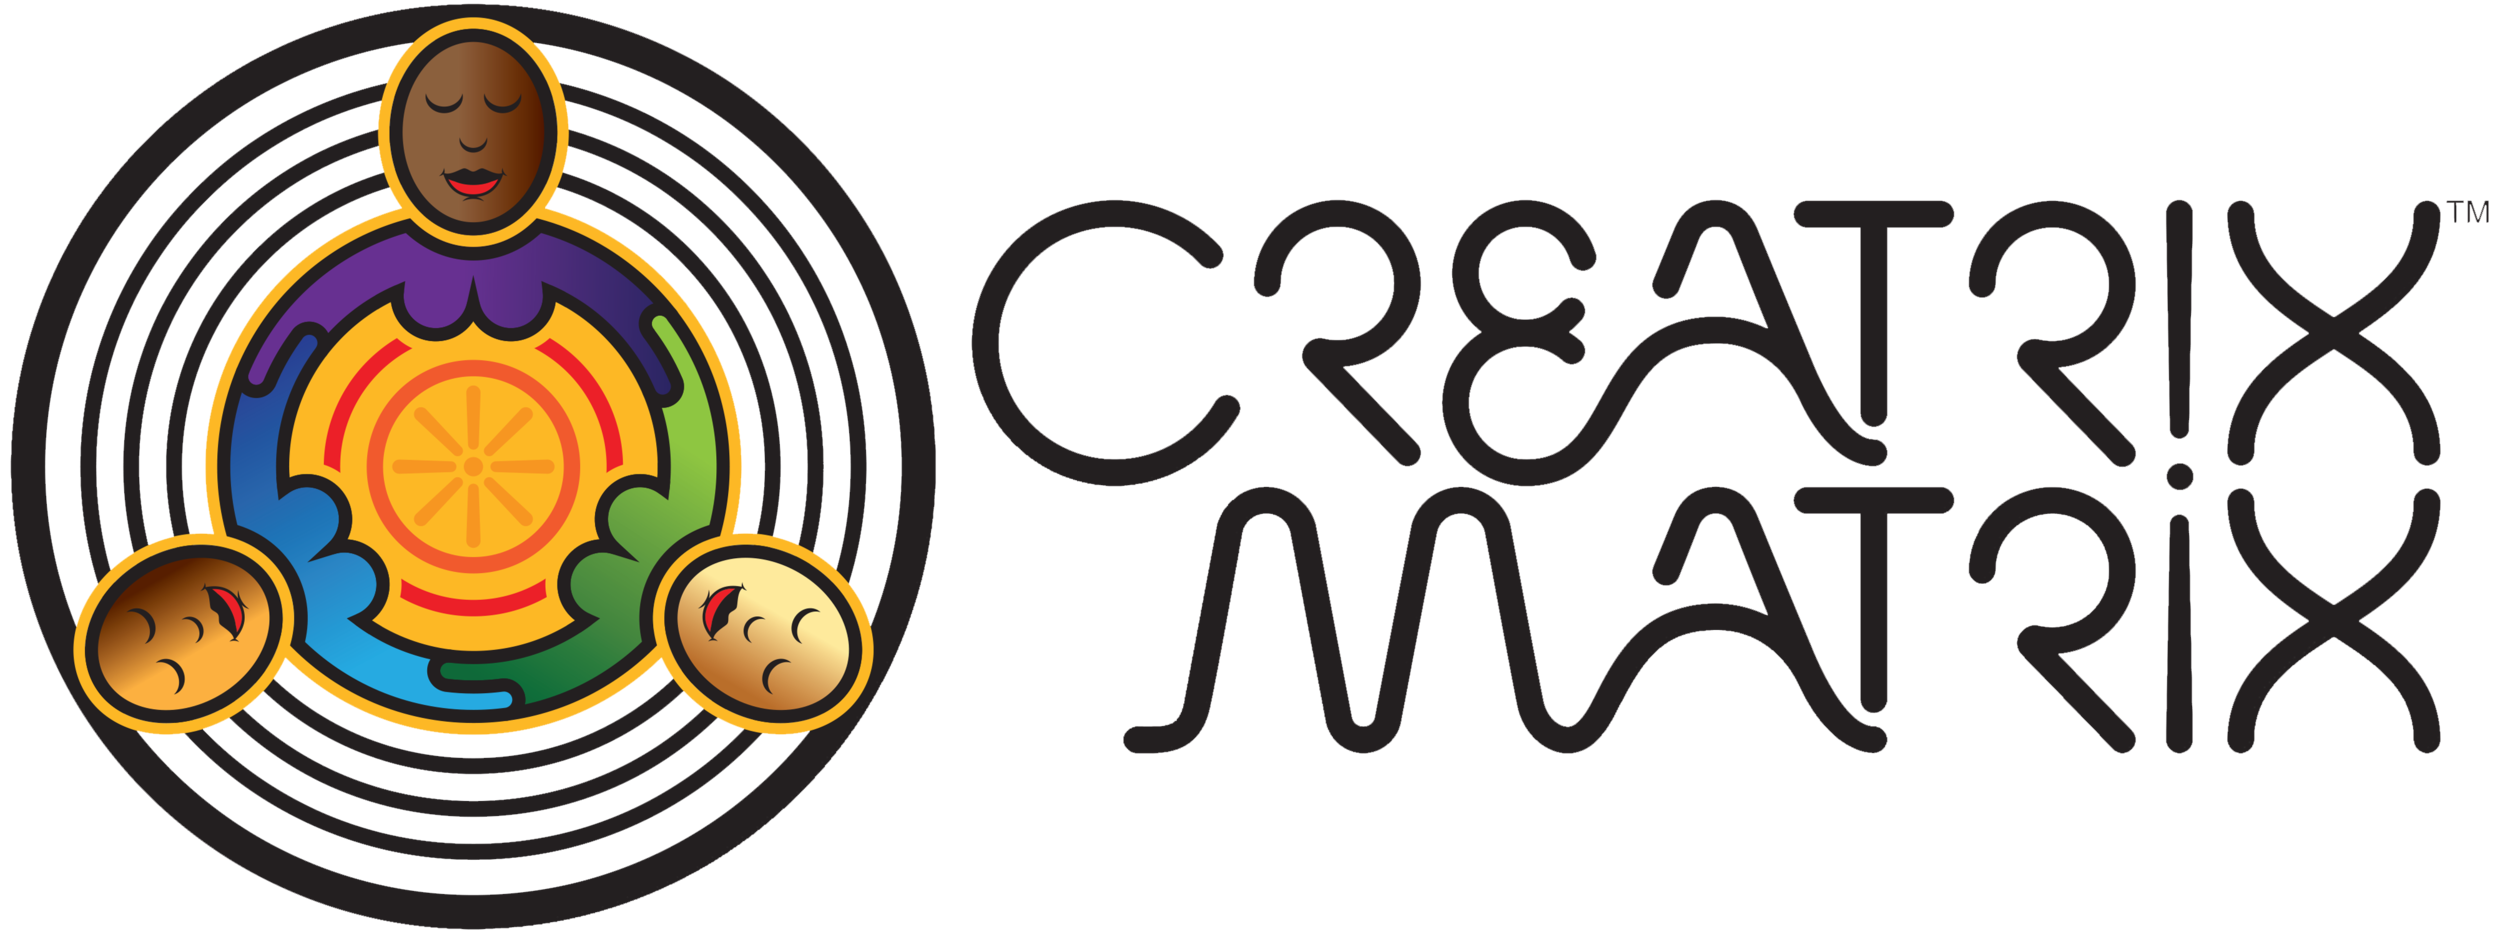 Creatrix-Matrix-Logo-clean.png